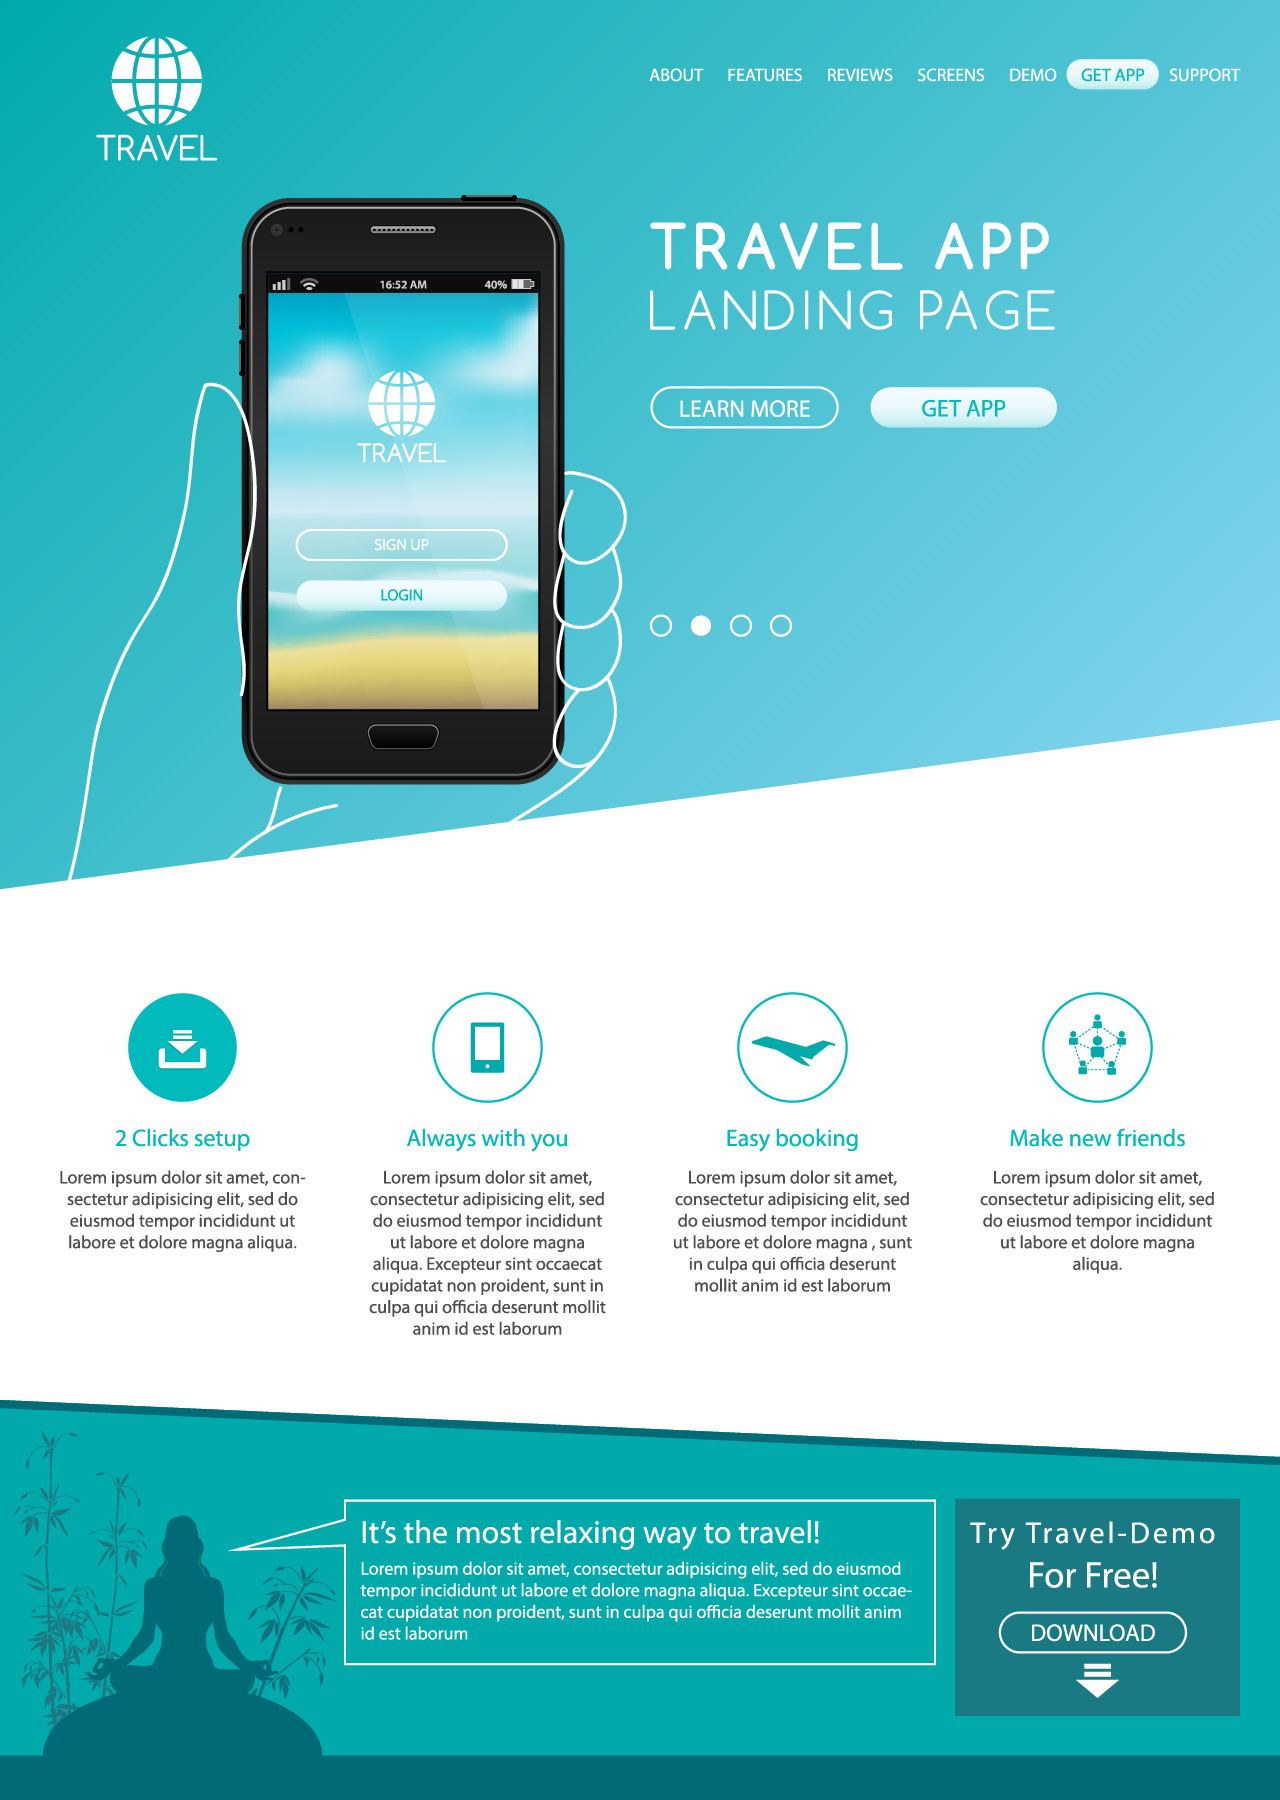 Website landing page mockup layout by Andrei Verner